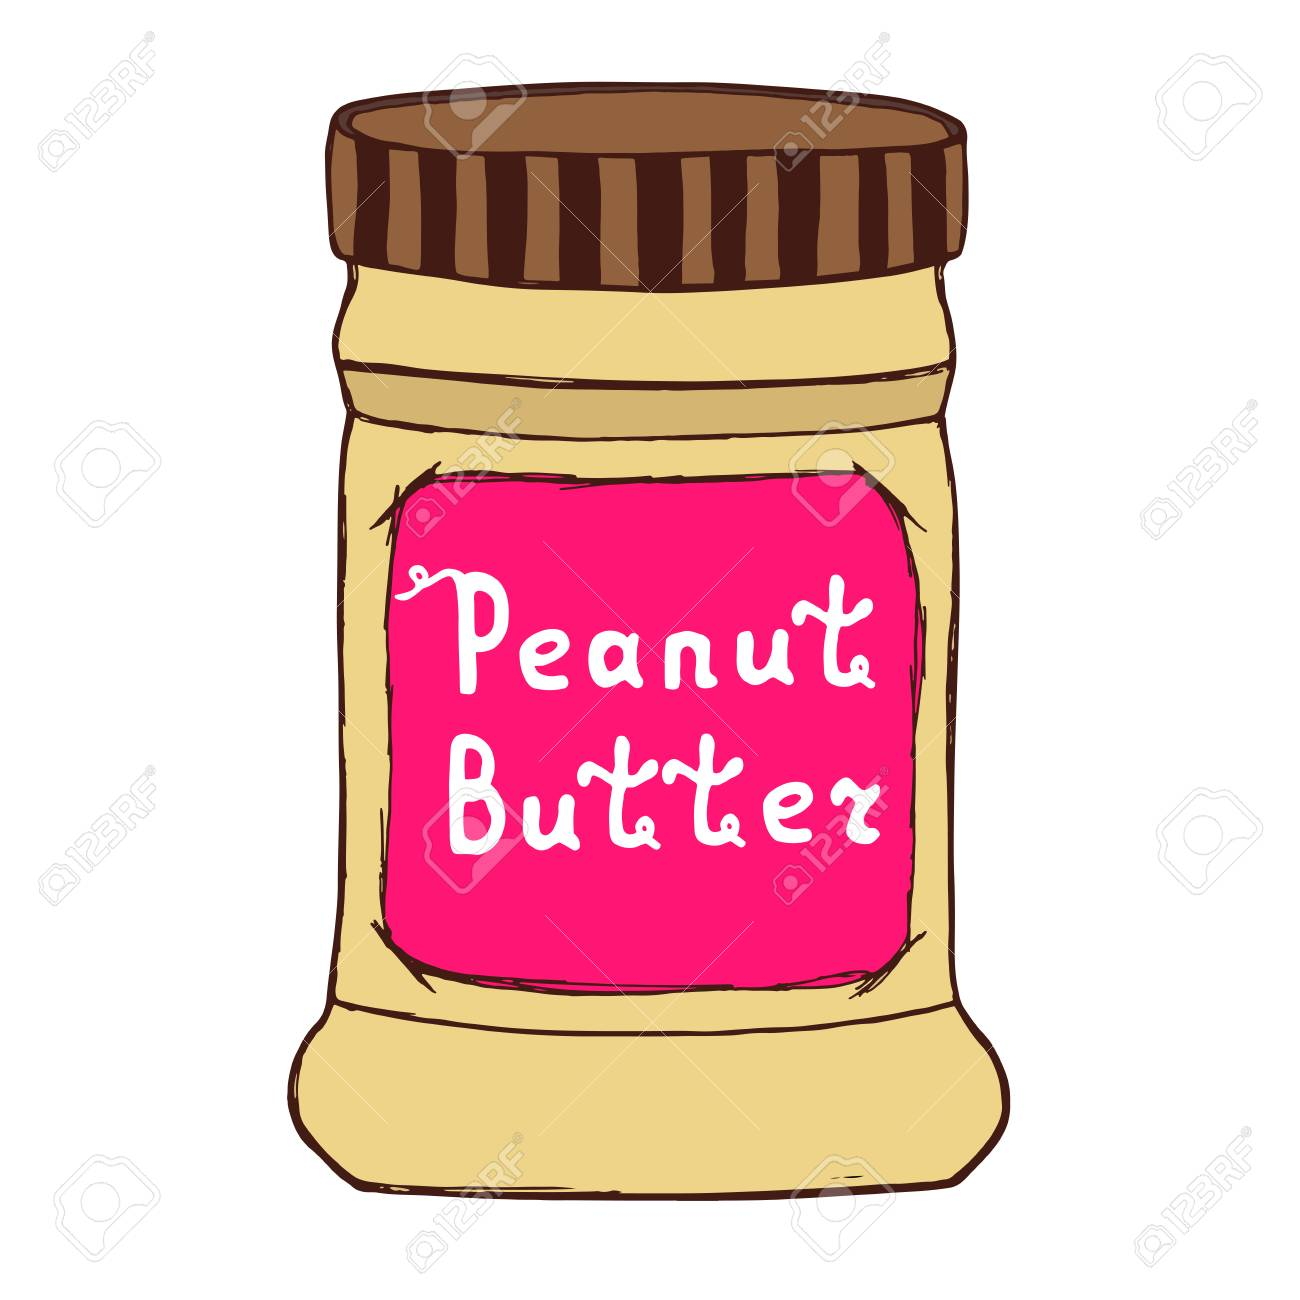 Peanut butter jar. Sketch illustration with hand drawn letters.